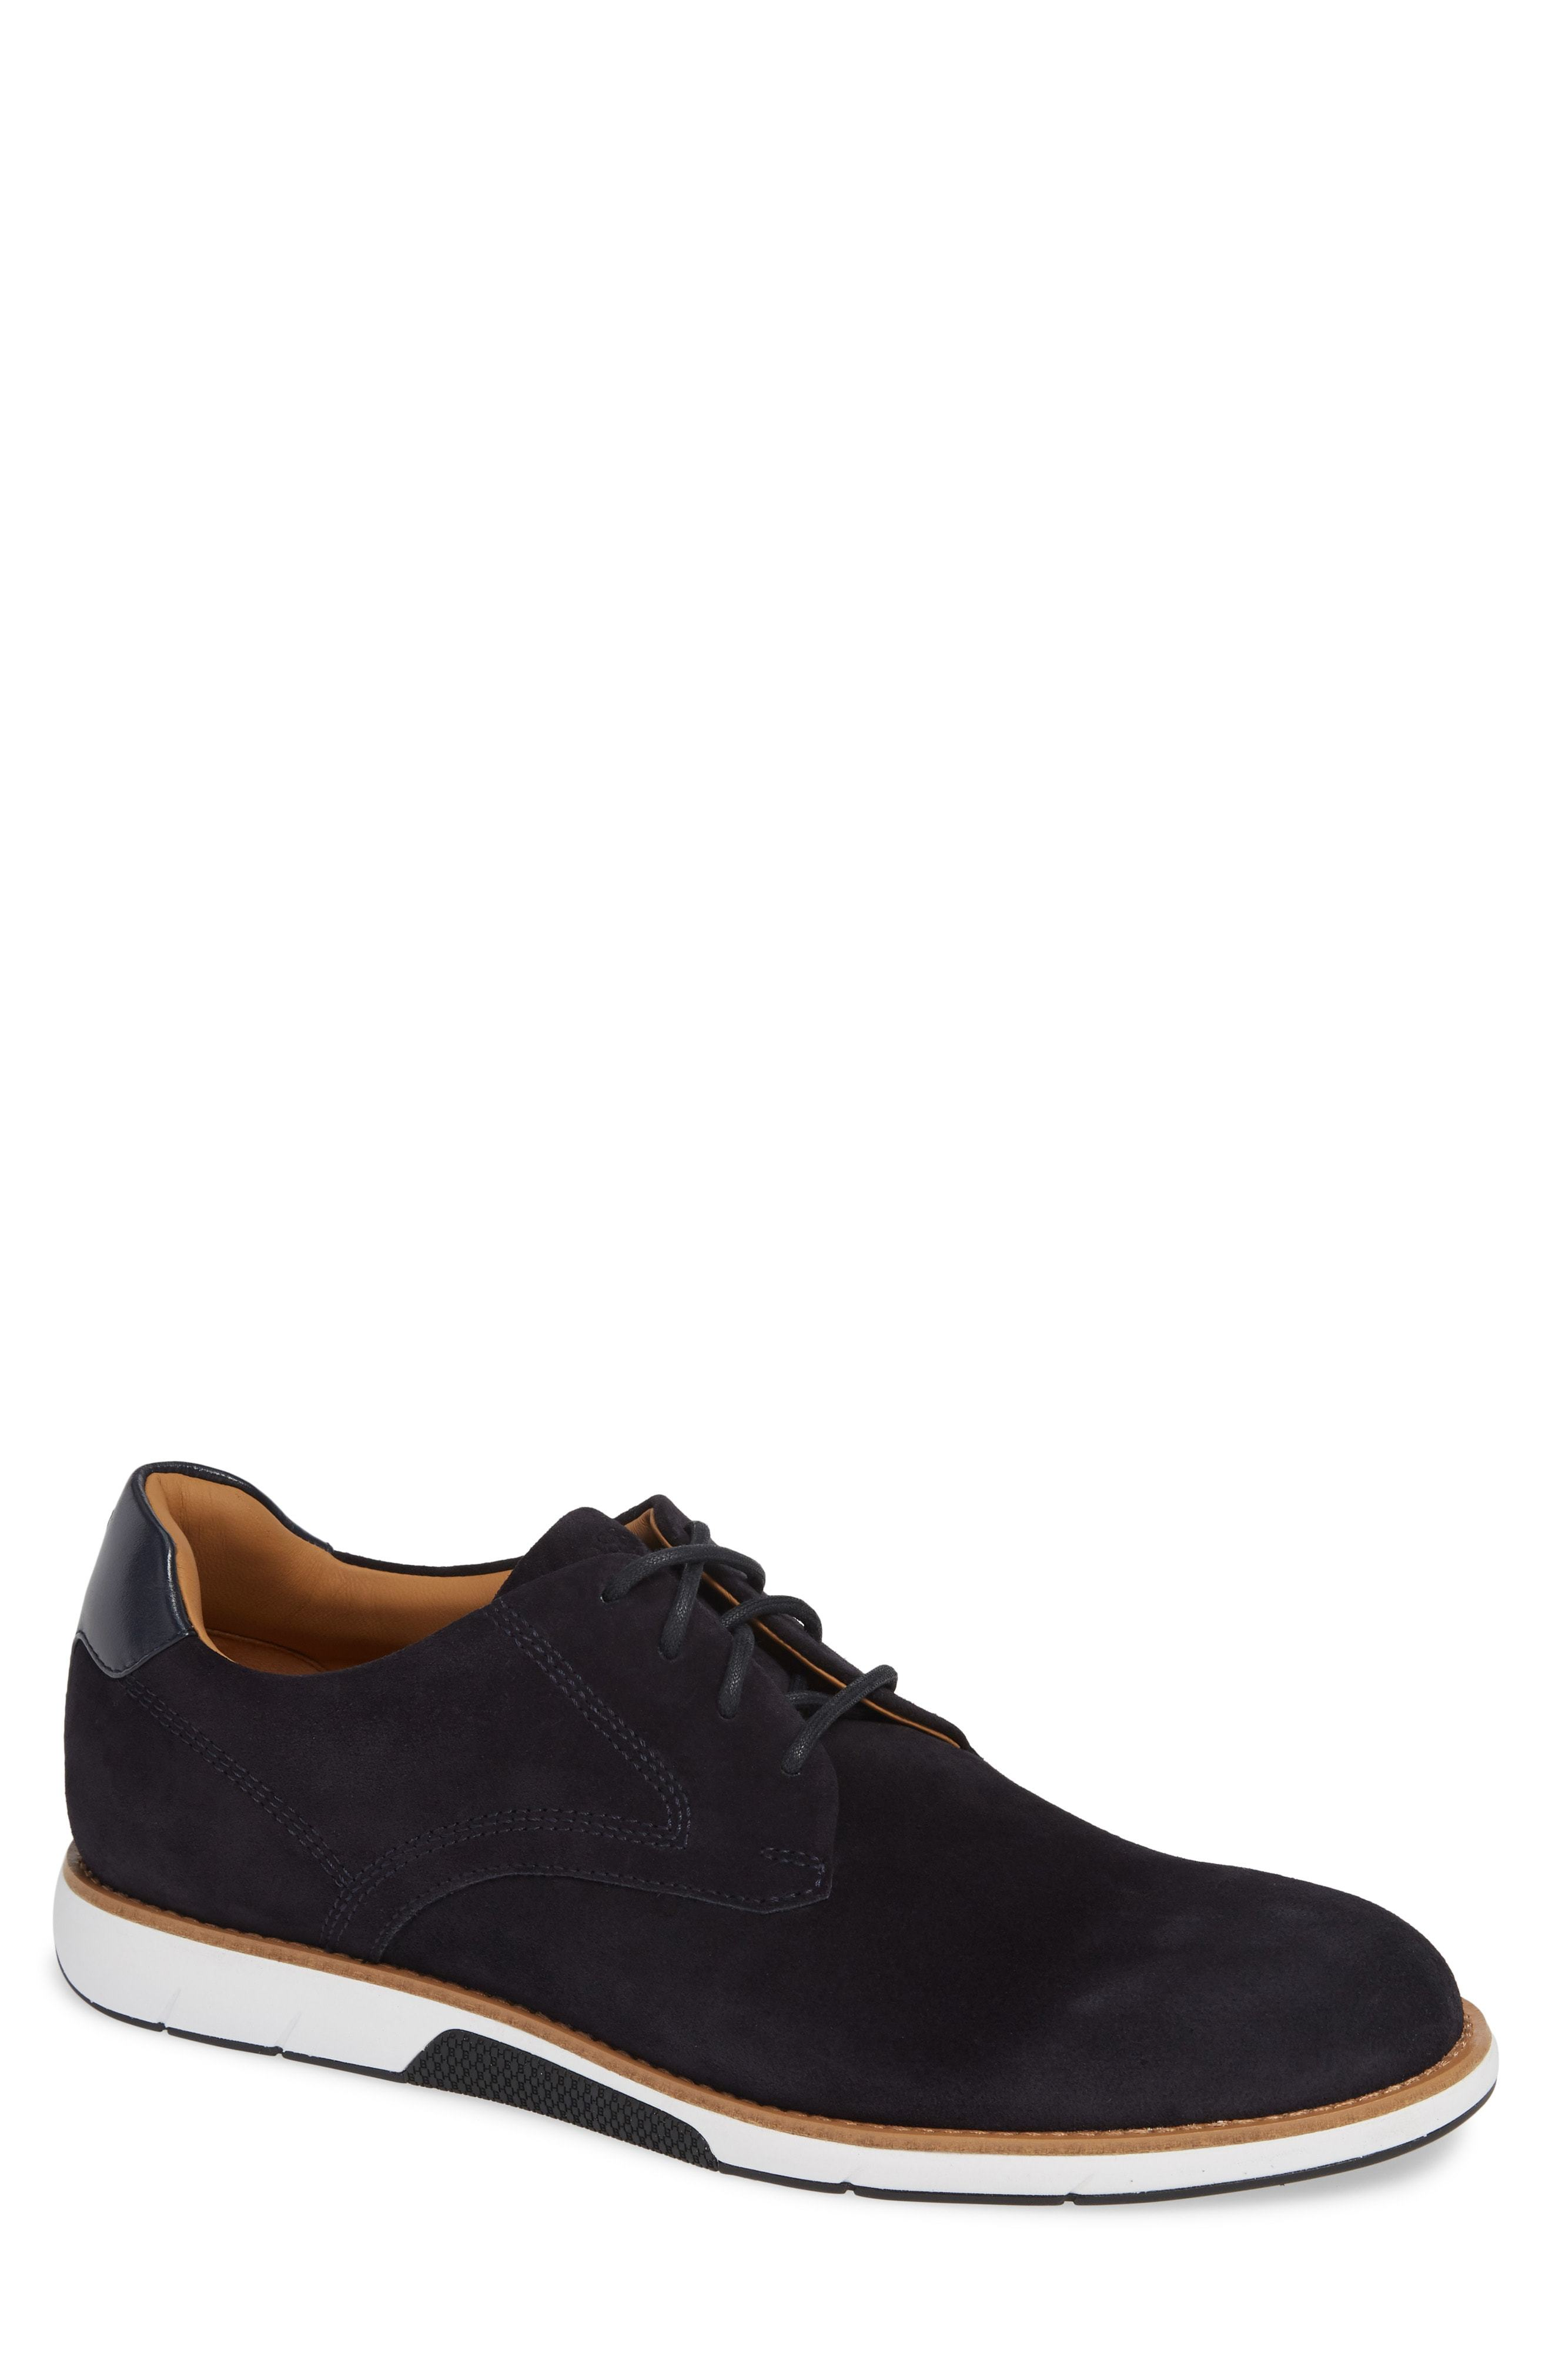 BOSS Summit Water Resistant Plain Toe Derby